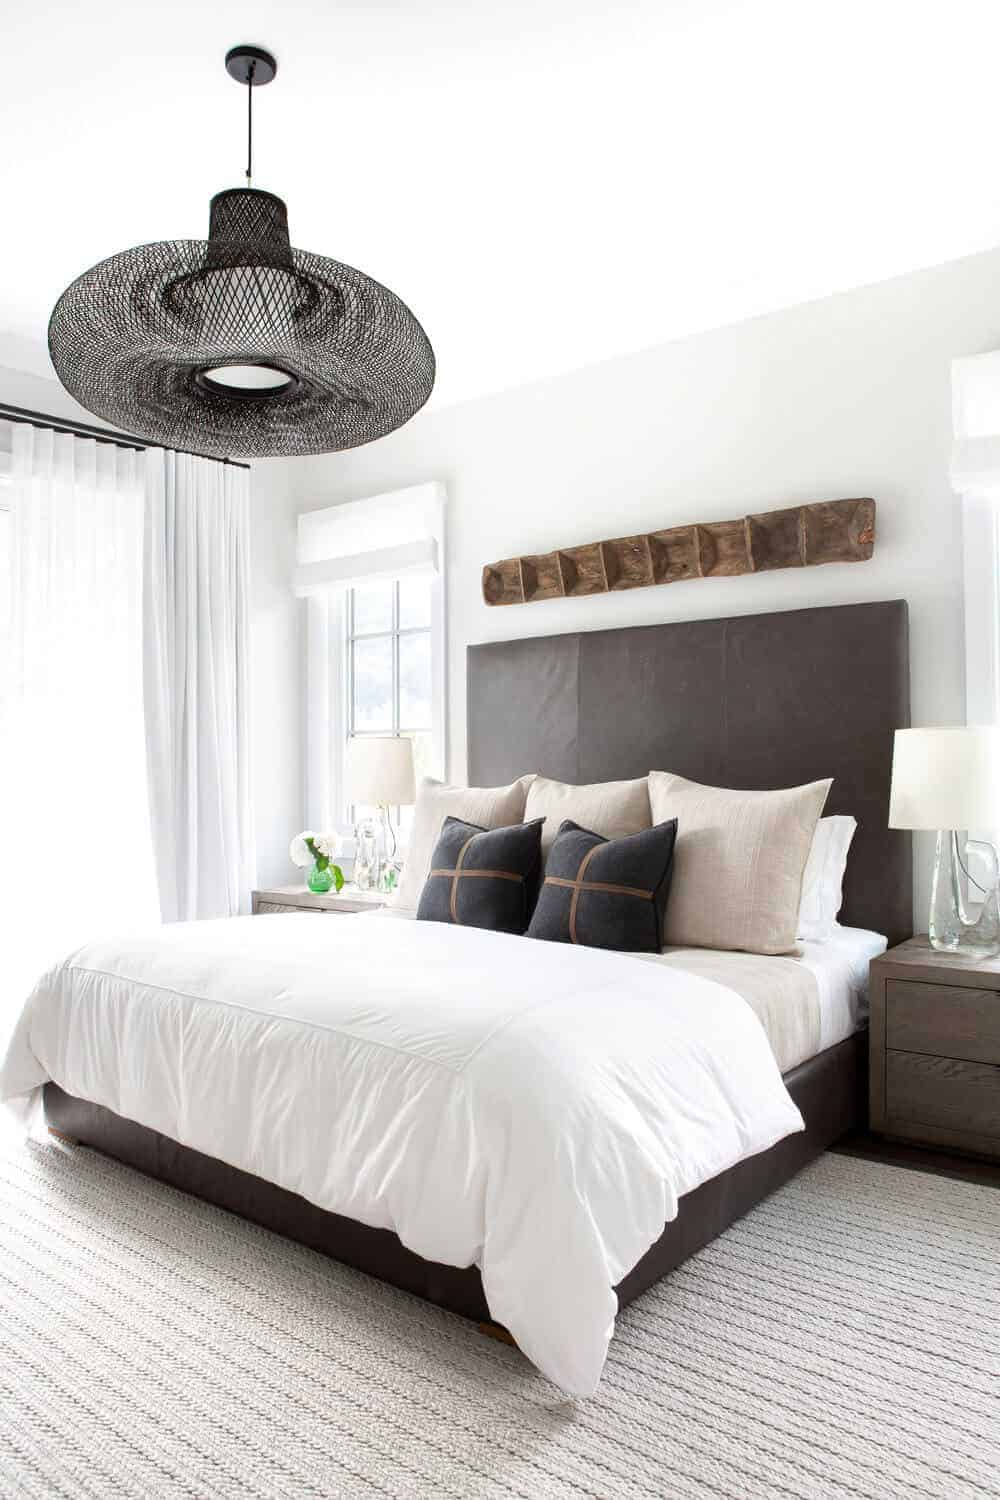 The light gray carpeted flooring complements the dark gray cushioned bed with a large cushioned headboard of the same hue. This is adorned with a wooden artwork mounted on the white wall above the headboard that matches with the decorative hood of the pendant light.